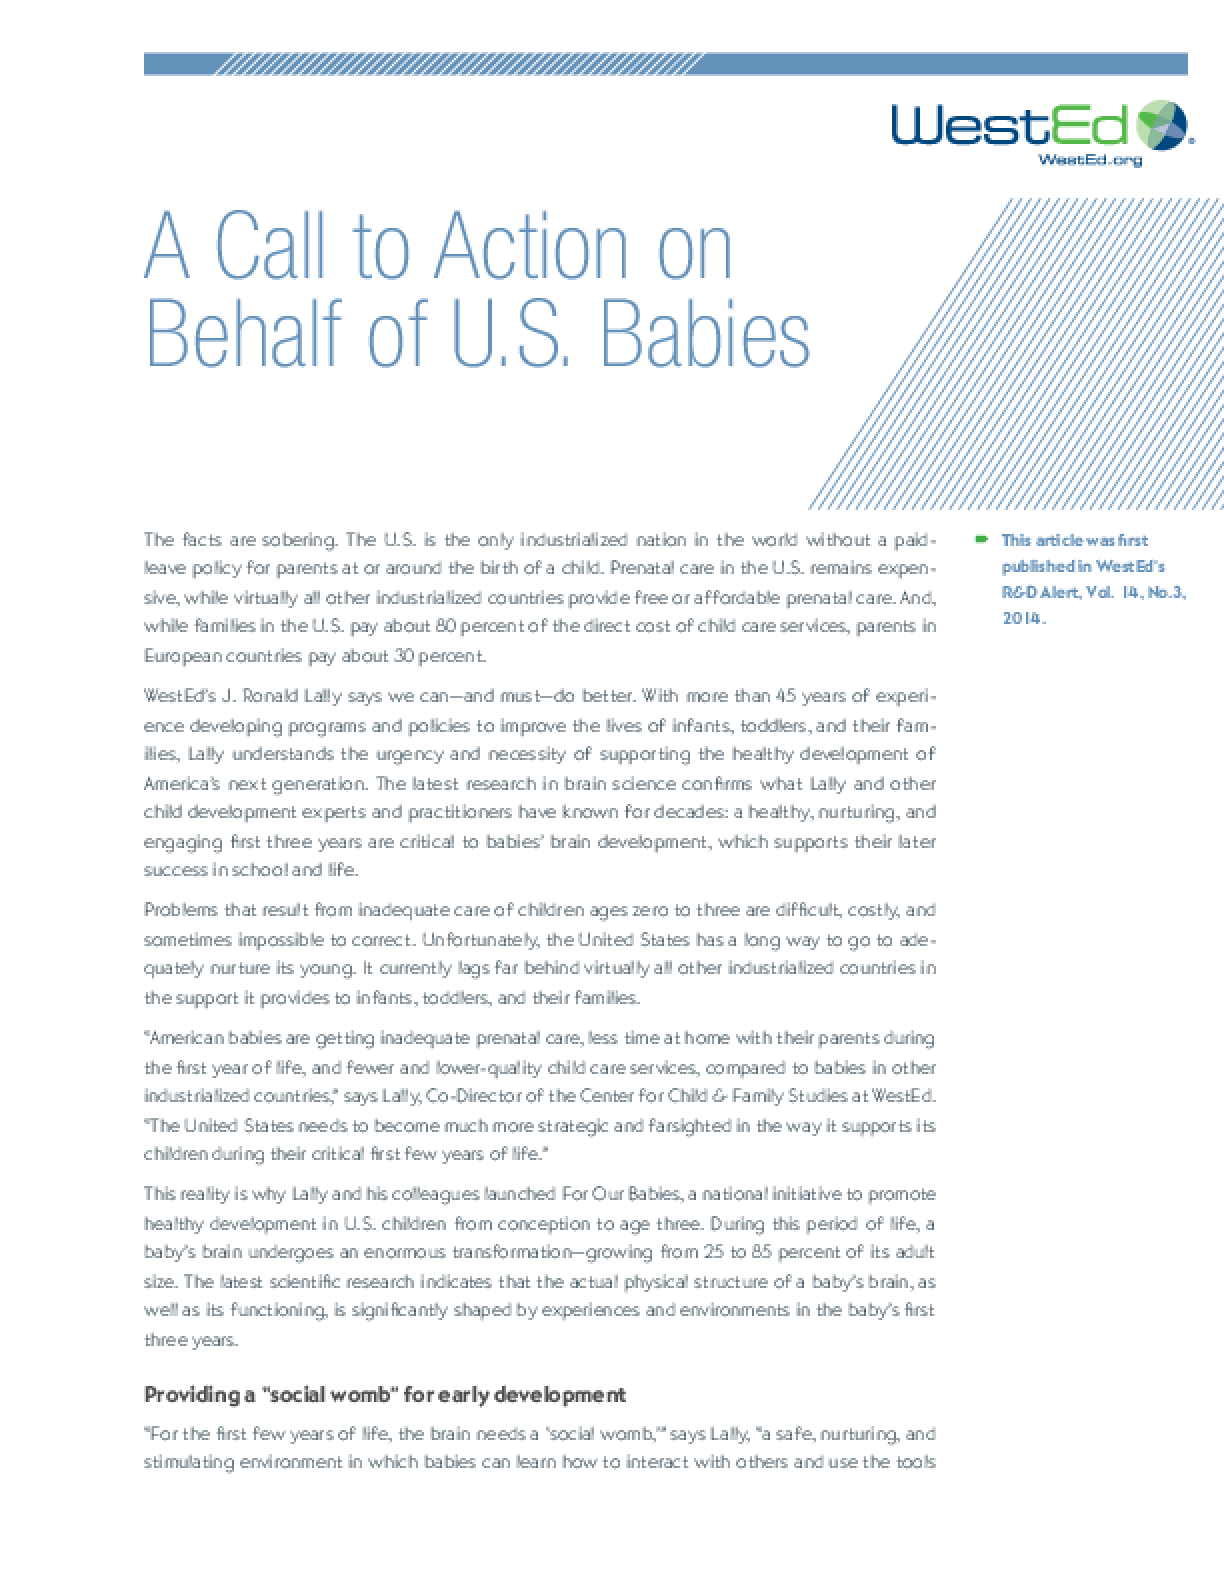 A Call to Action on Behalf of U.S. Babies